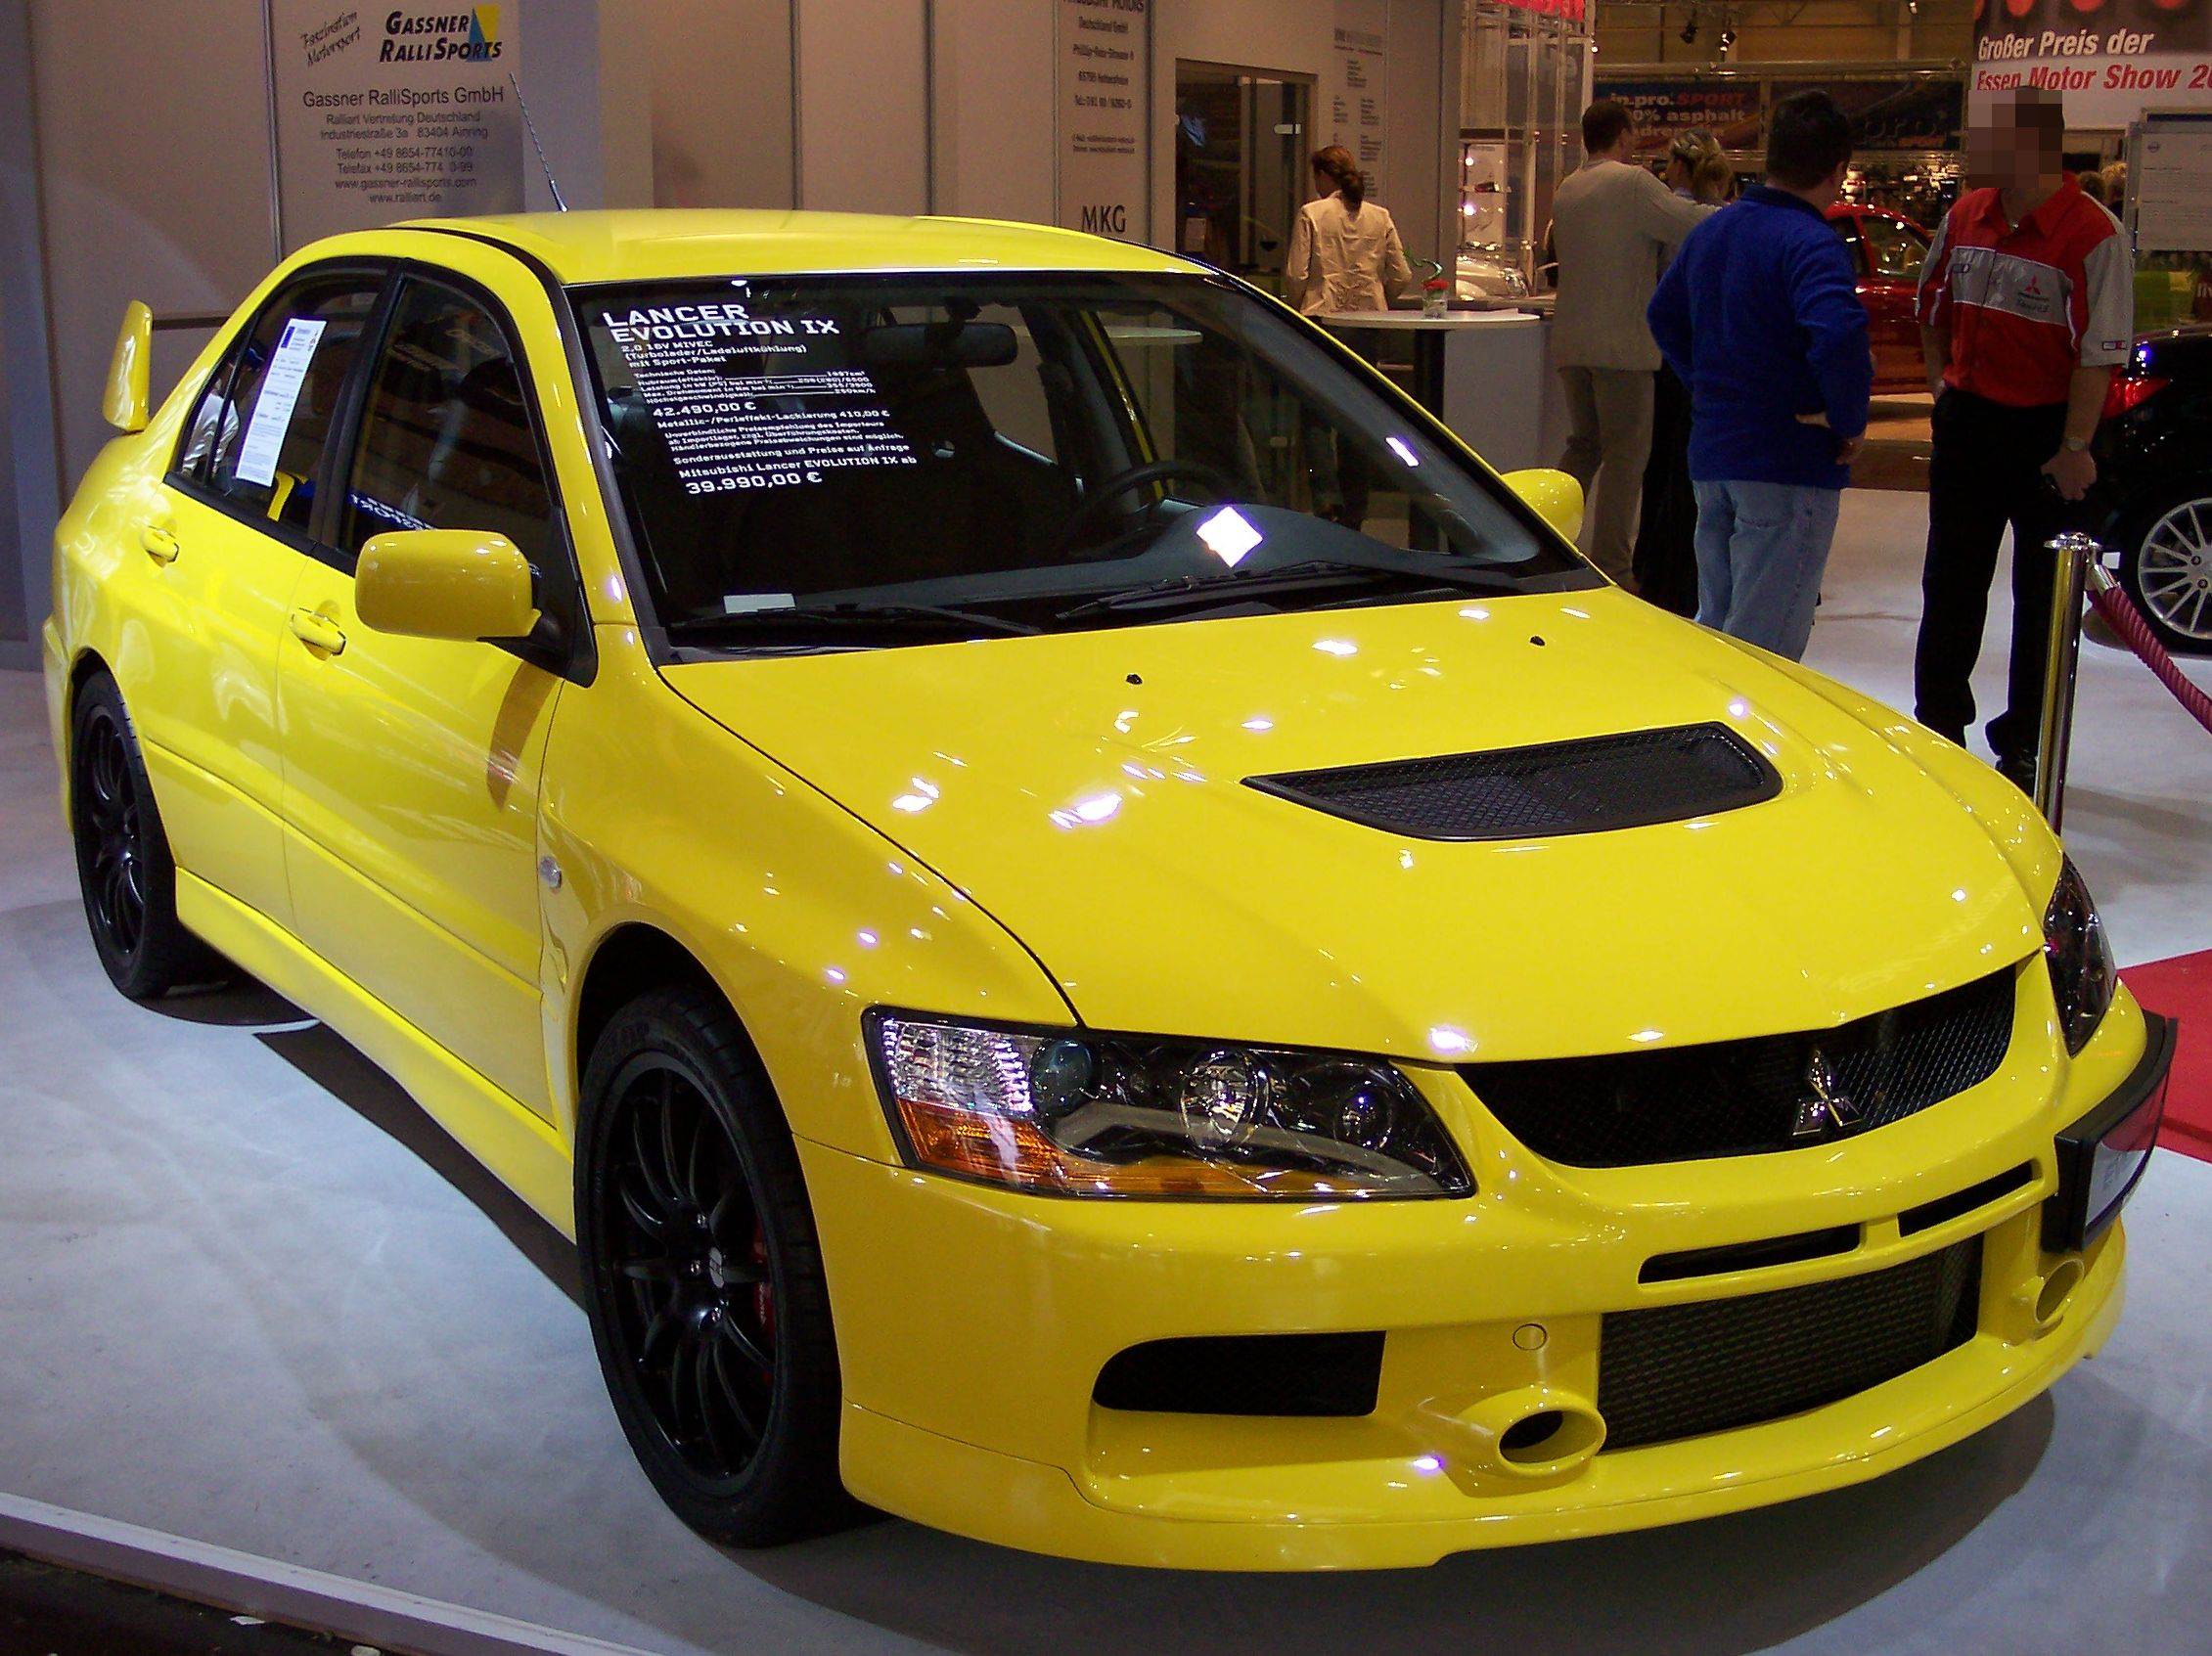 File:Mitsubishi Lancer Evolution IX yellow vr EMS.jpg - Wikimedia Commons